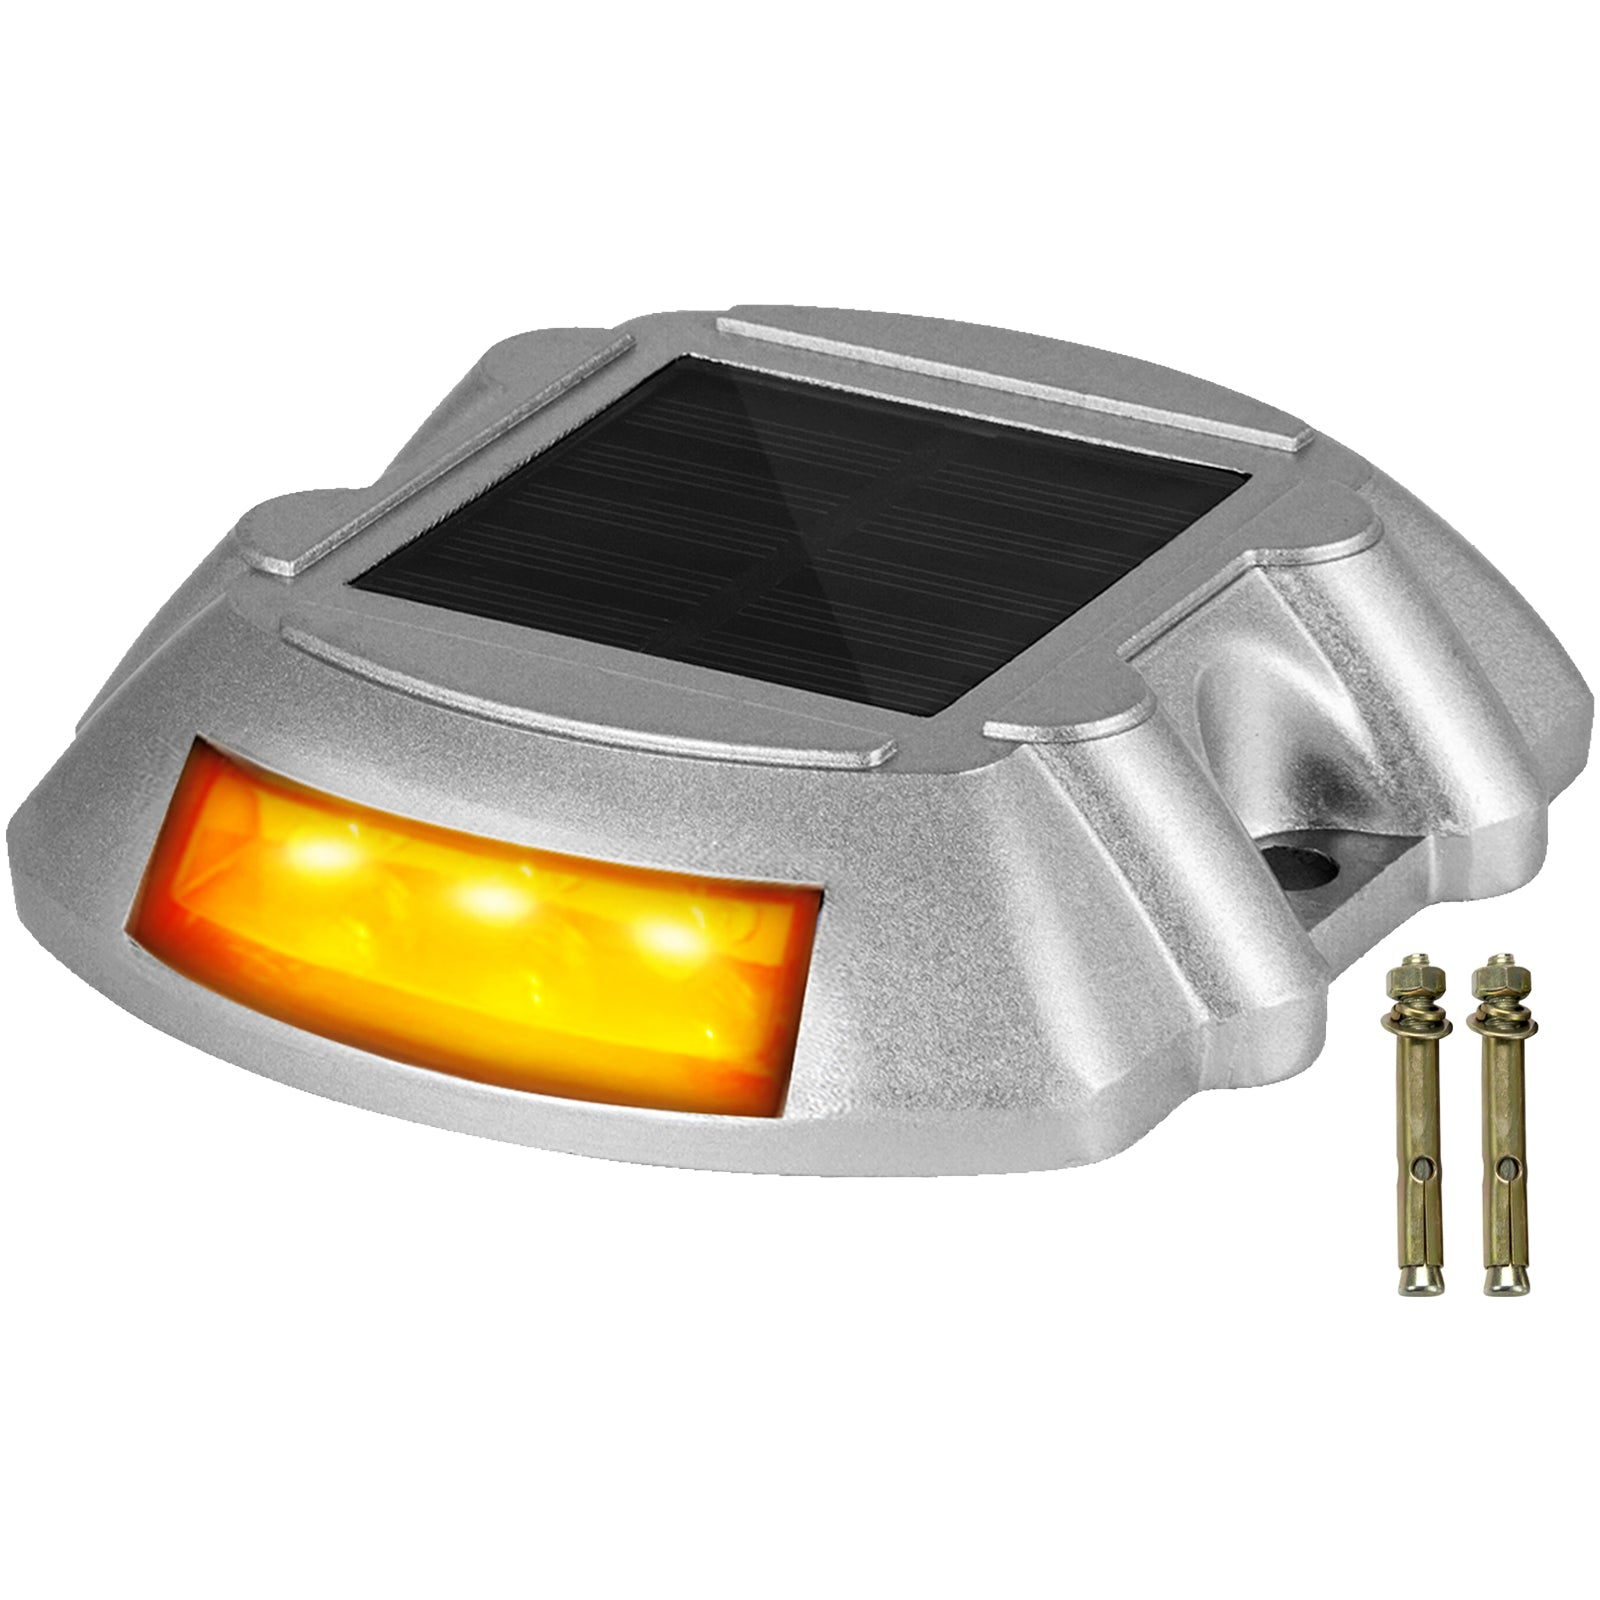 Driveway Lights, Solar Driveway Lights 1-pack, Dock Lights With Switch In Orange